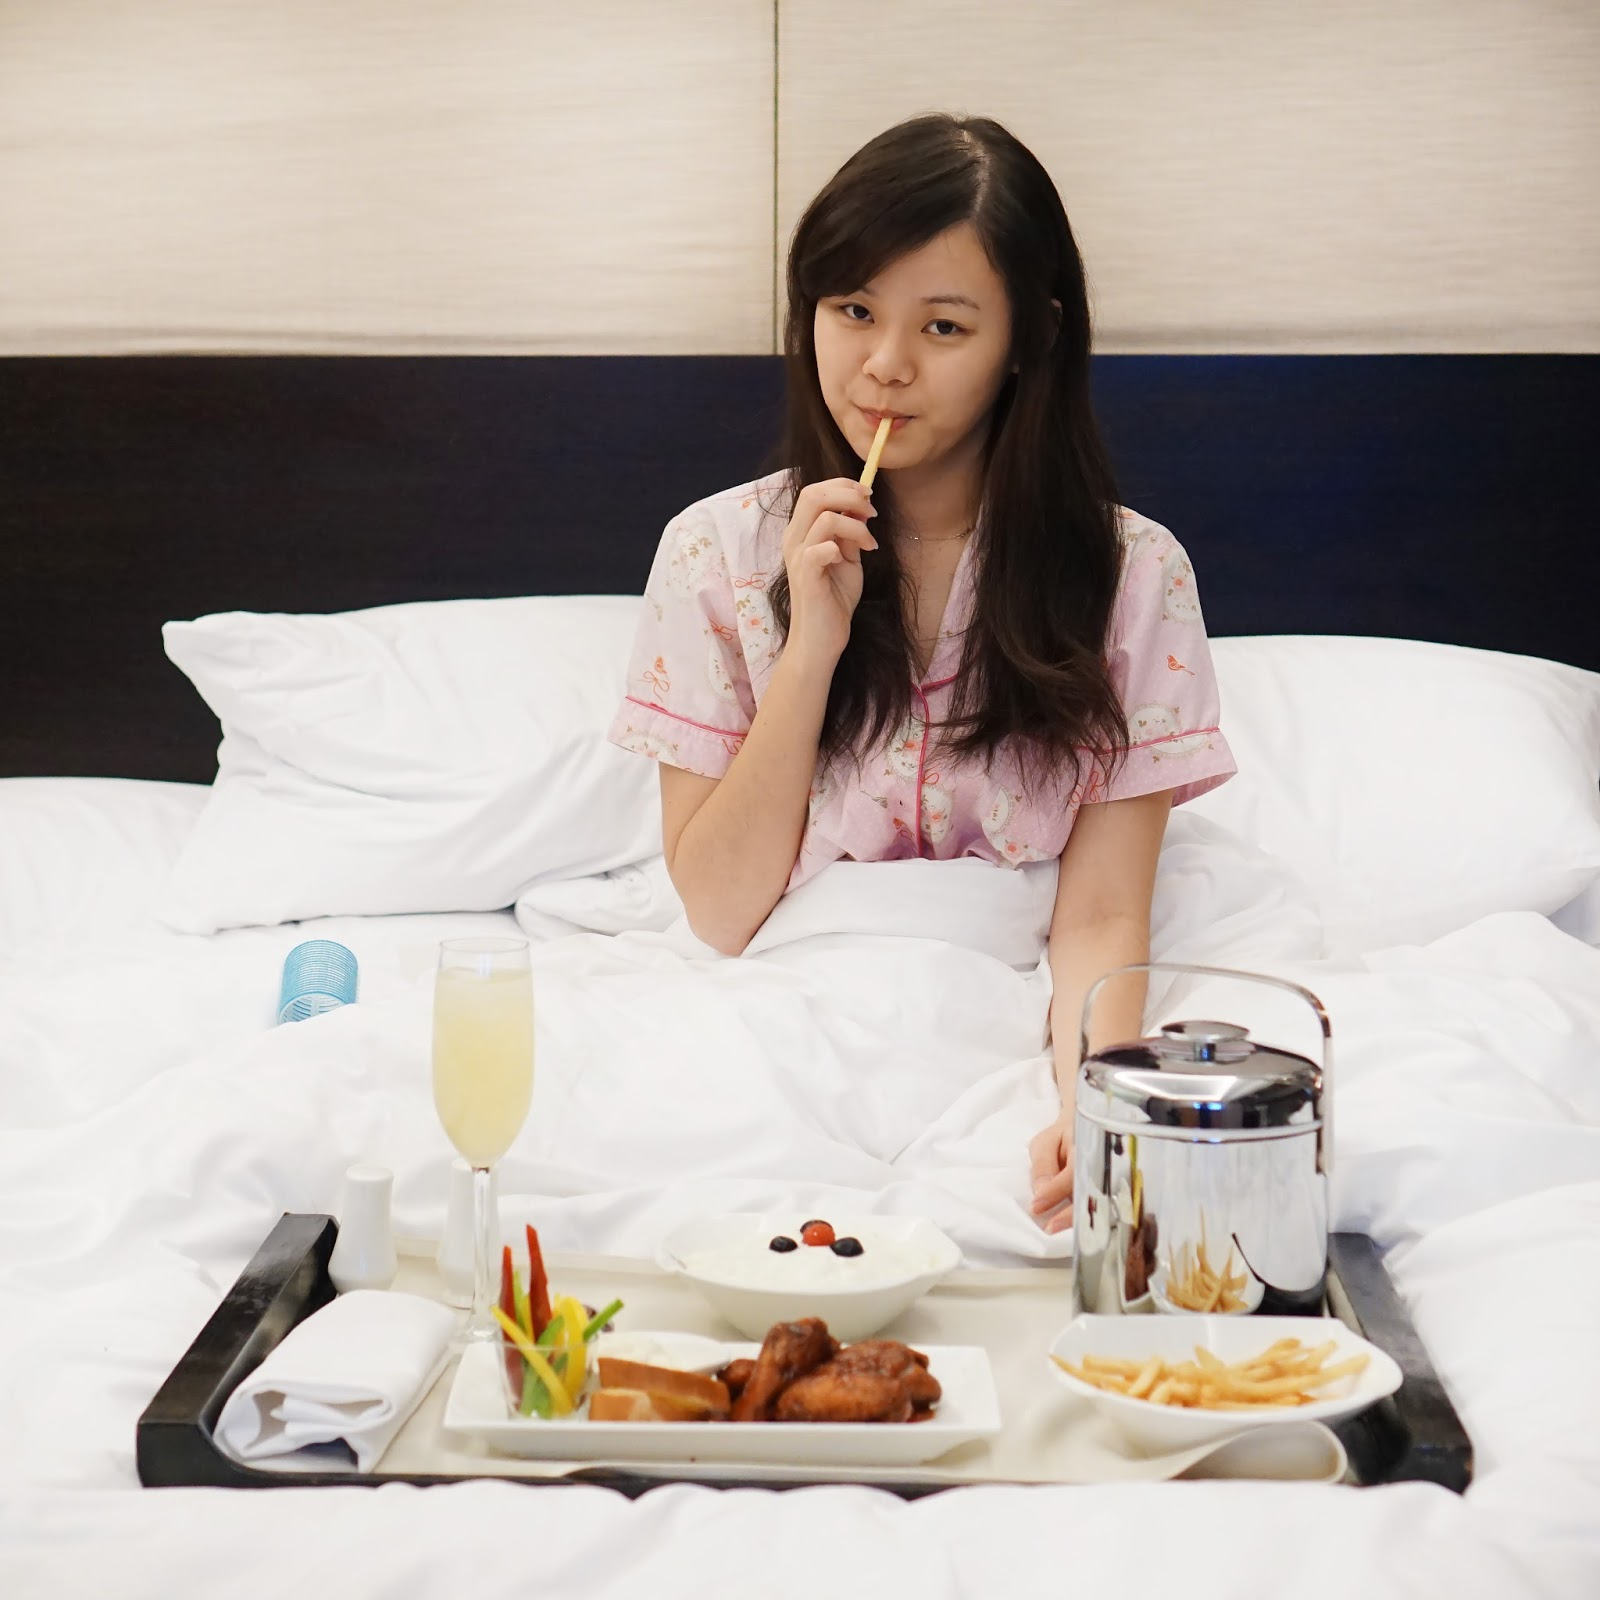 bare face, no makeup, girl, girls, breakfast on bed, lifestyle, jeanmilka, jean milka